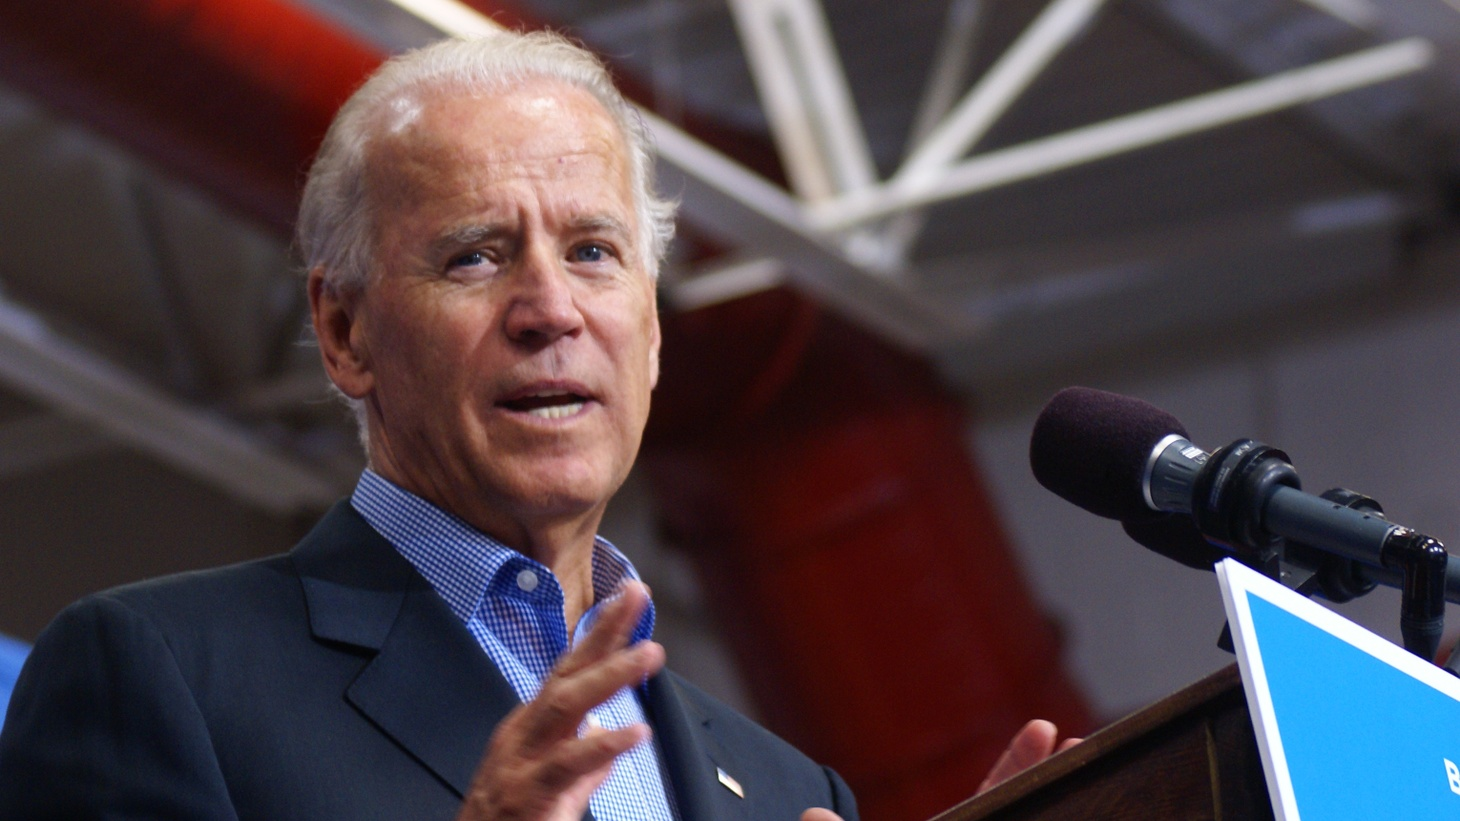 A quarter of respondents to a recent poll from Black Women's Roundtable and Essence Magazine said they would vote for Joe Biden if the 2020 presidential election were held today.